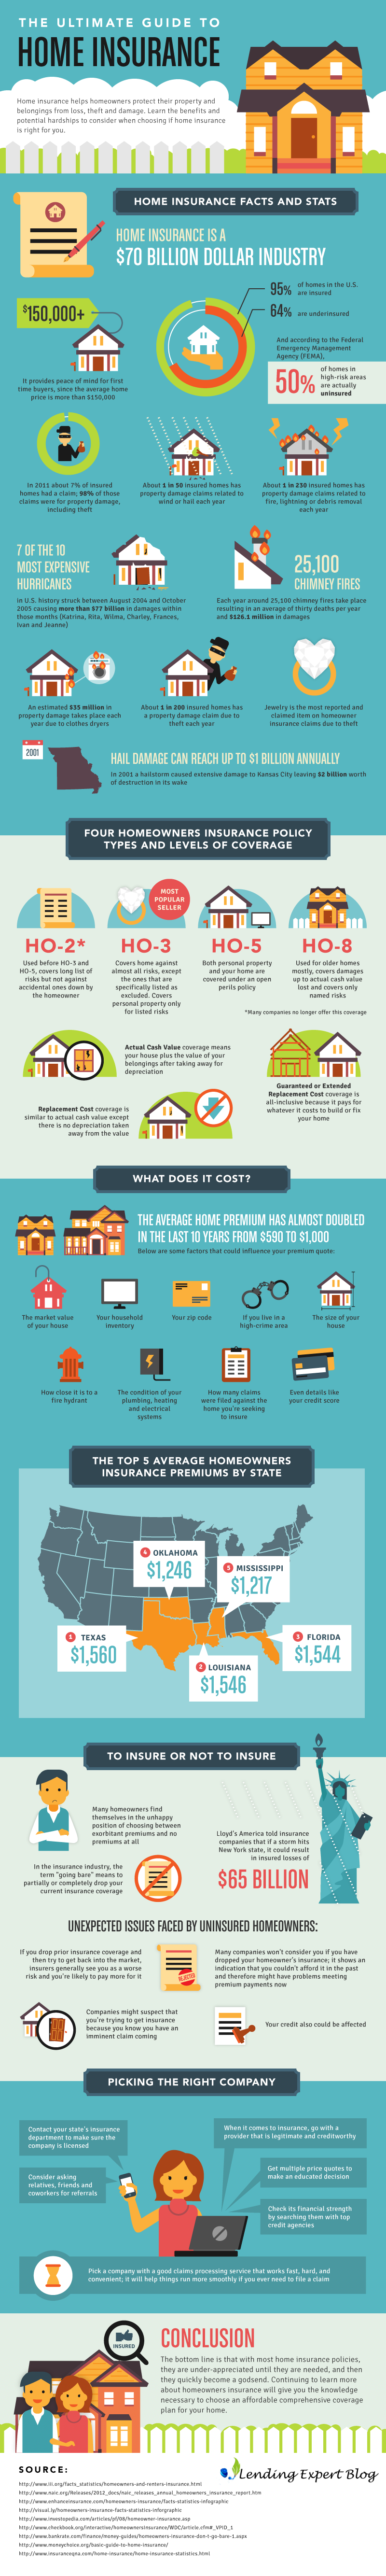 the-ultimate-guide-to-home-insurance-infographic